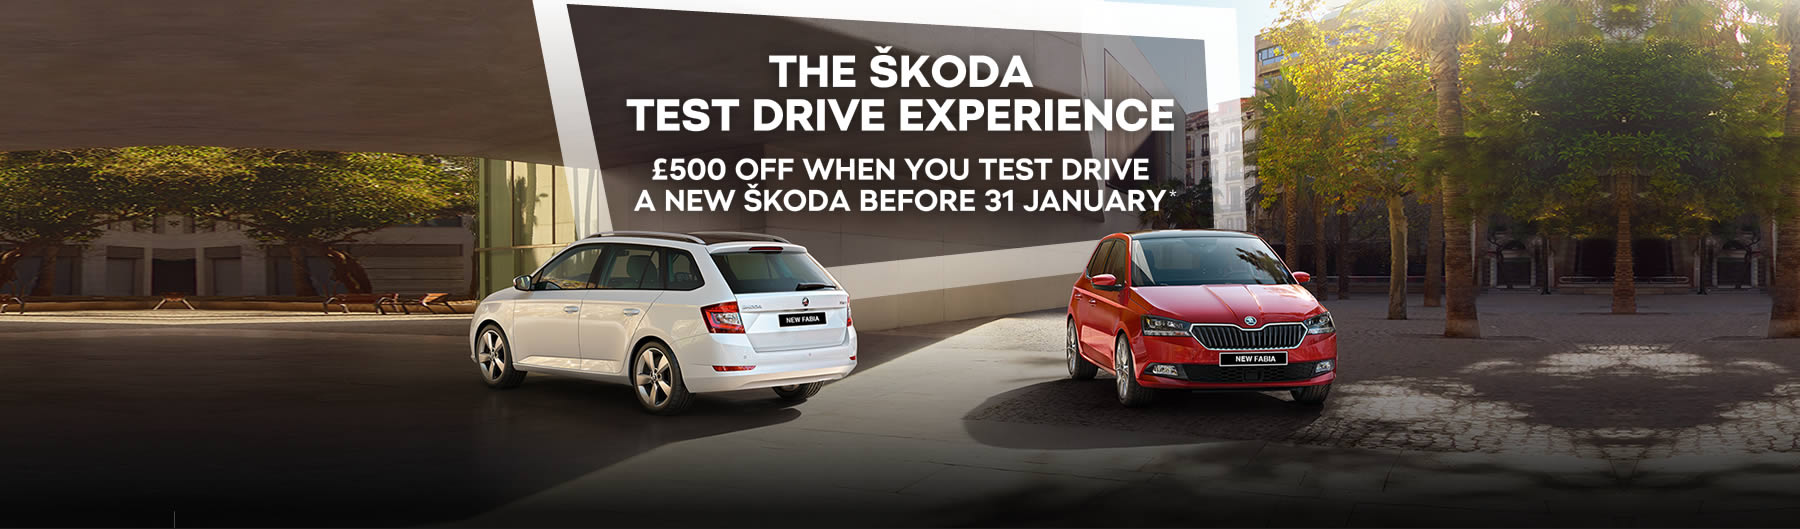 Skoda Test Drive Experience